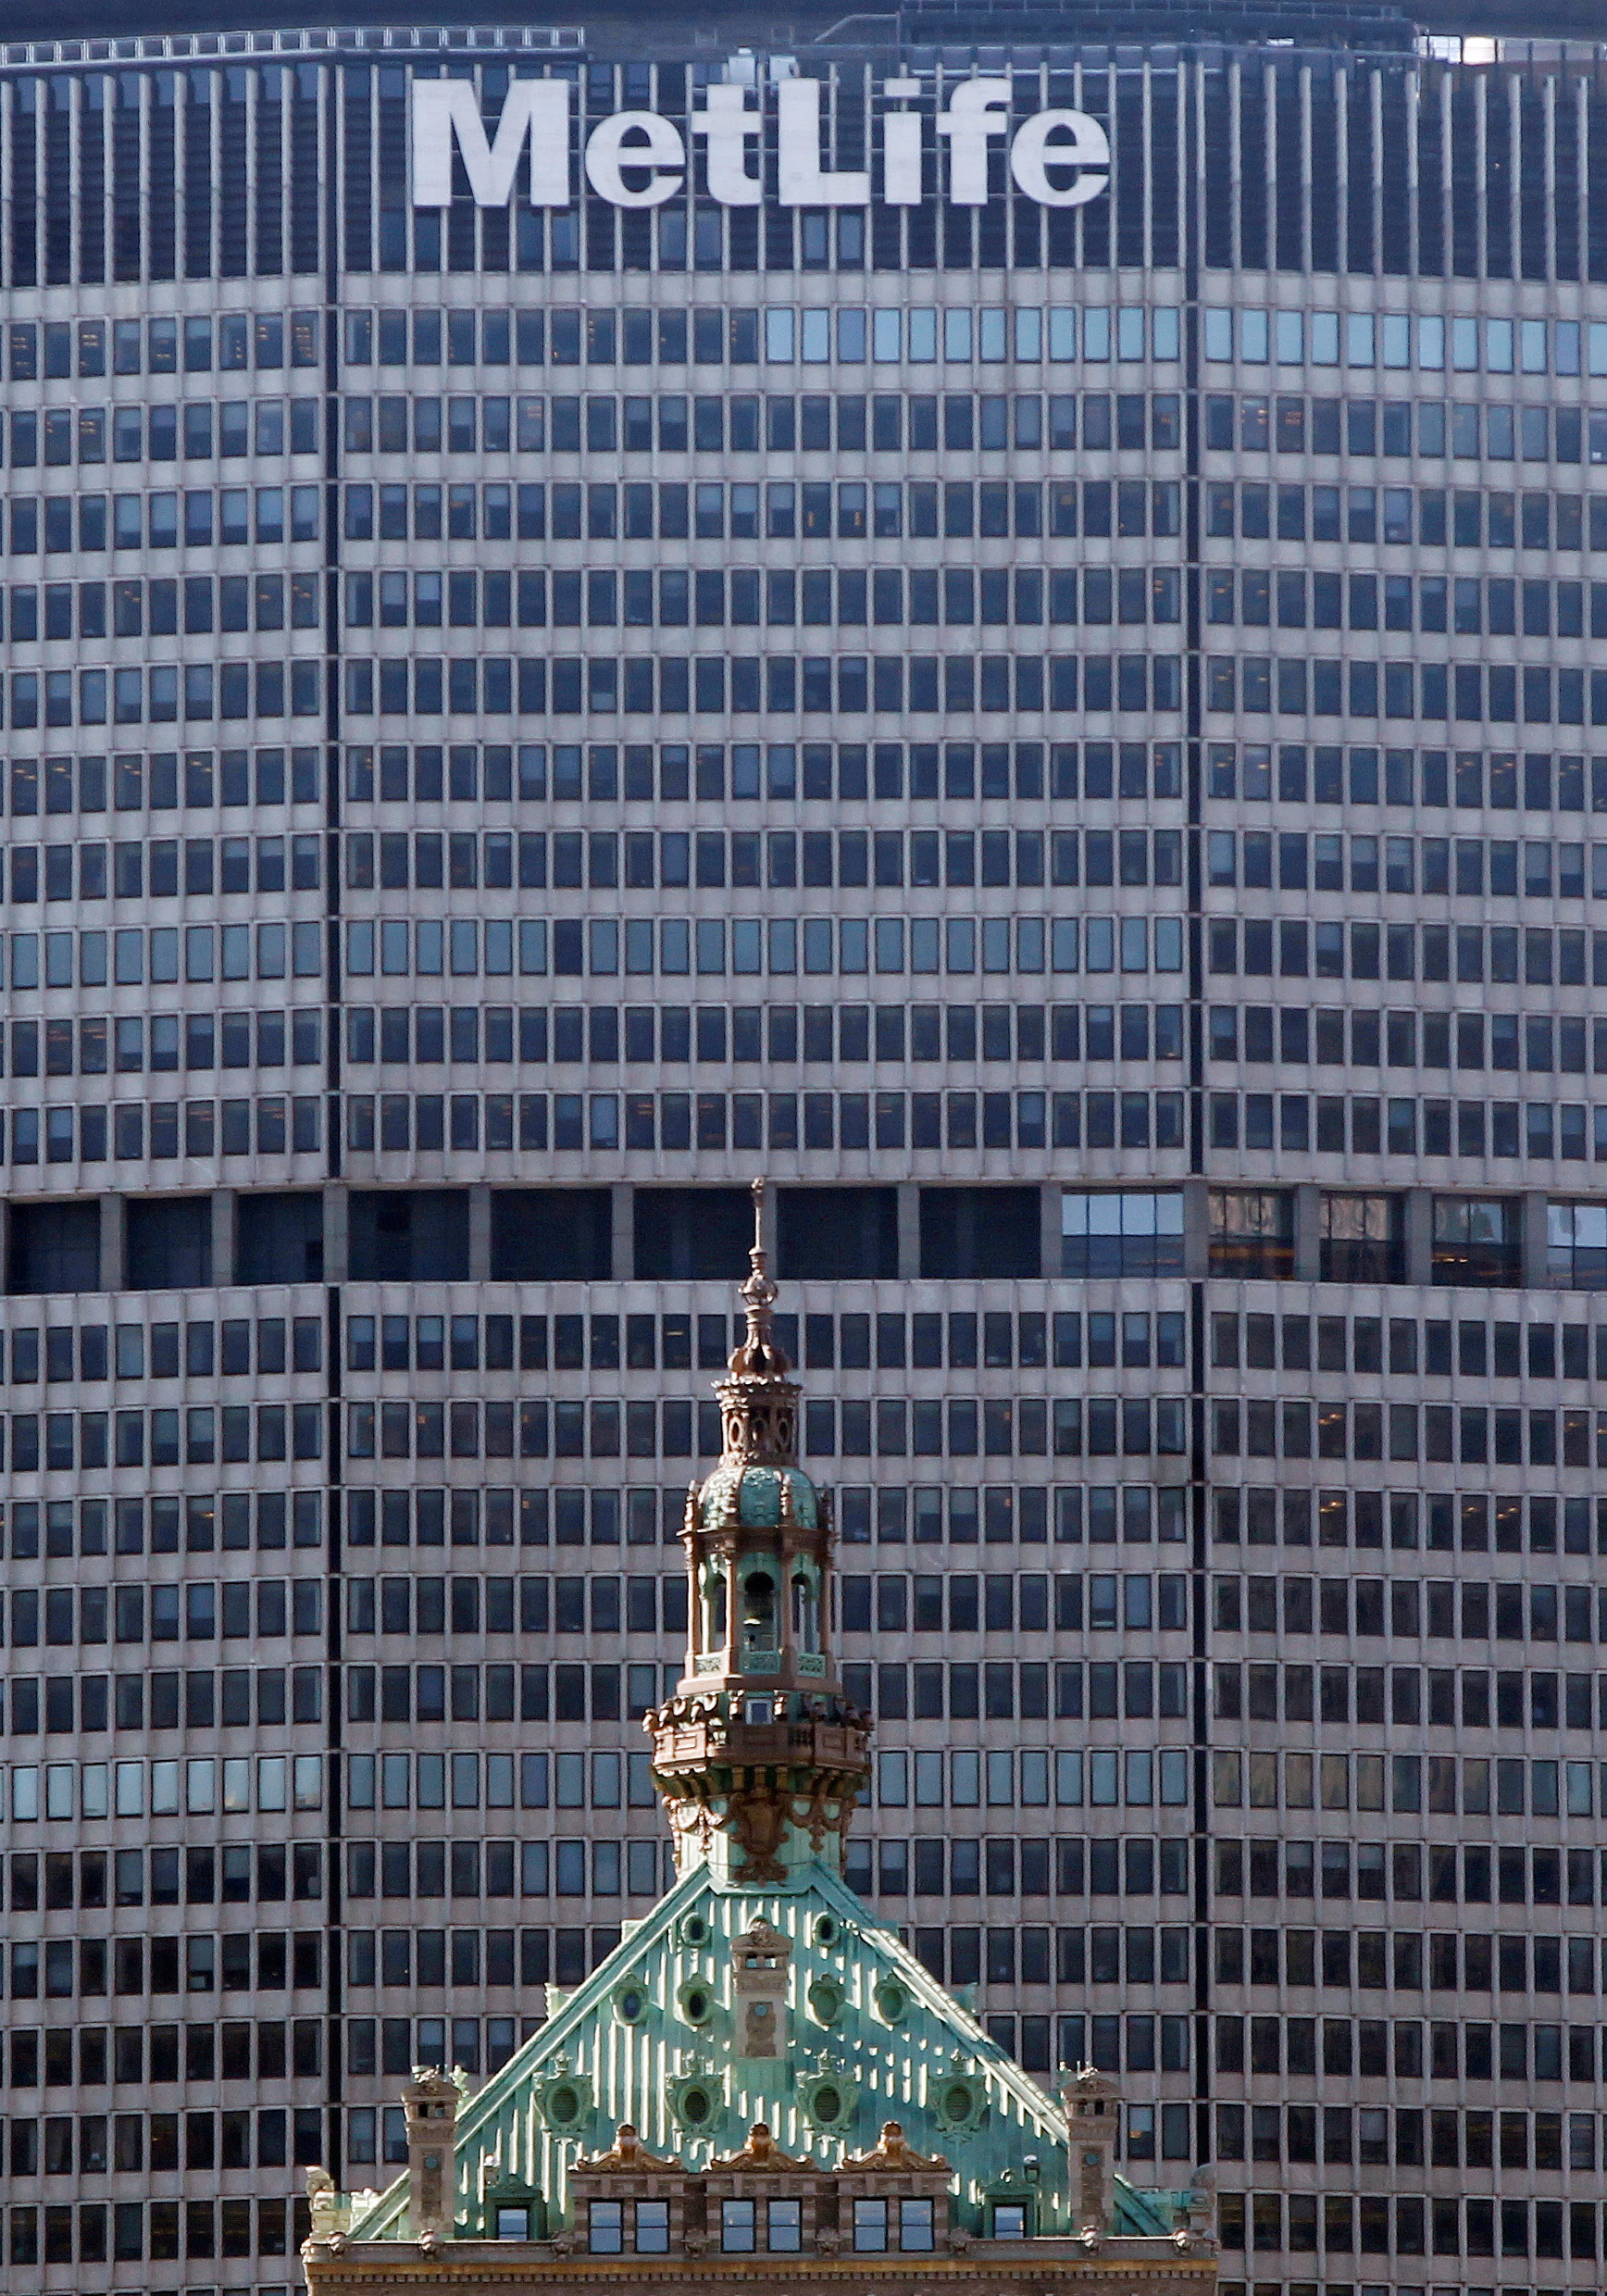 The MetLife building is seen in New York. REUTERS/Shannon Stapleton